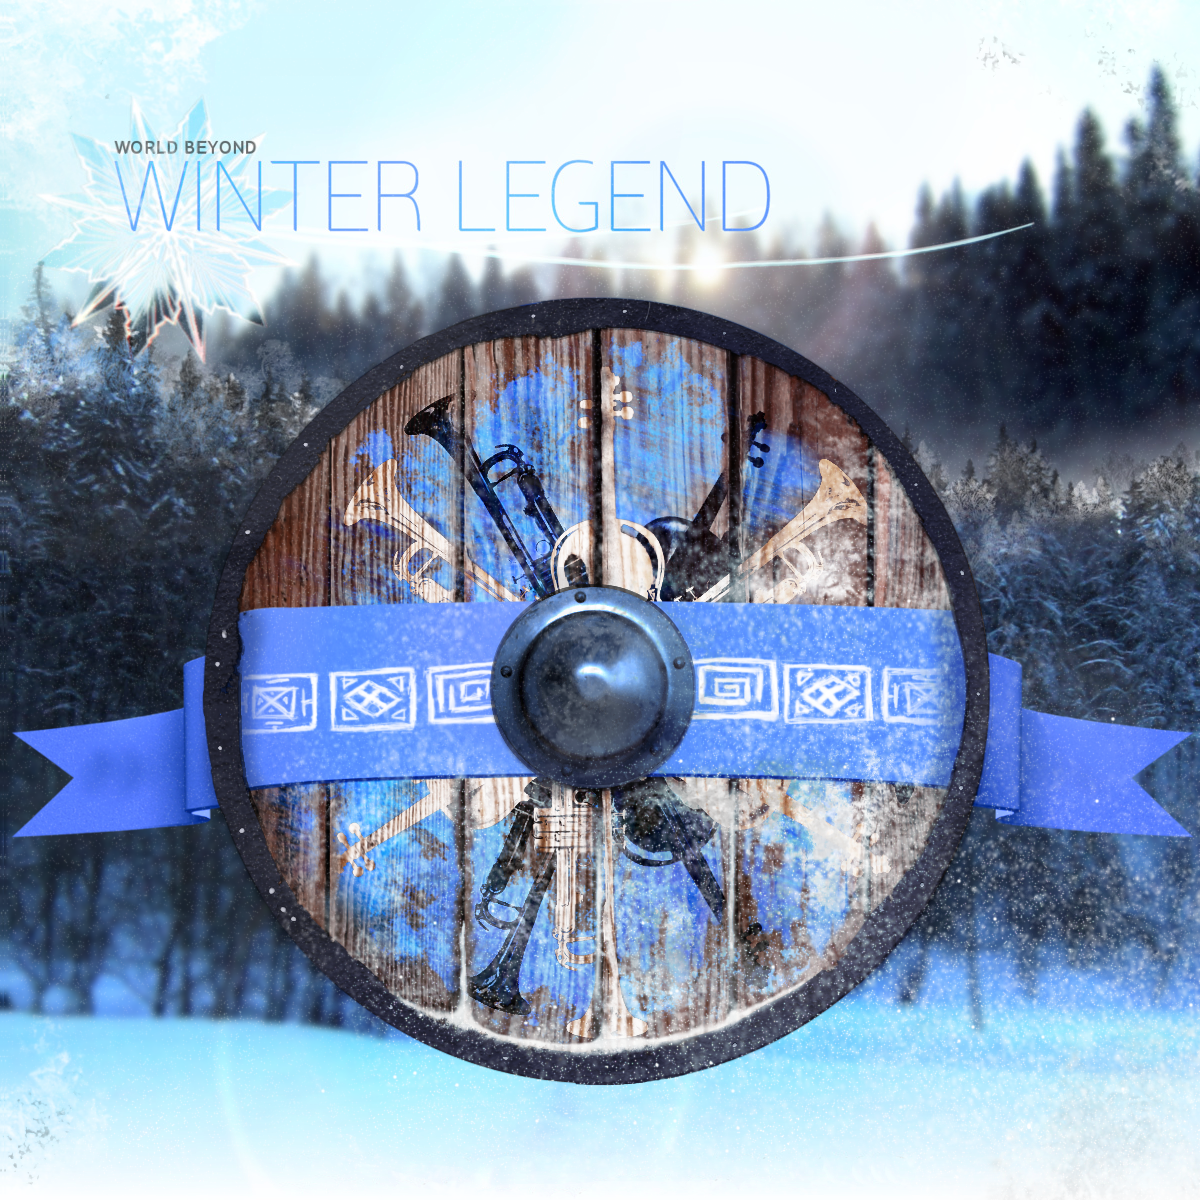 World Beyond Soundtracks Production Music For Film And Media September Update 2 Winter Legend Available On Itunes Amazon Spotify More It is a song filled with uncertainty. world beyond